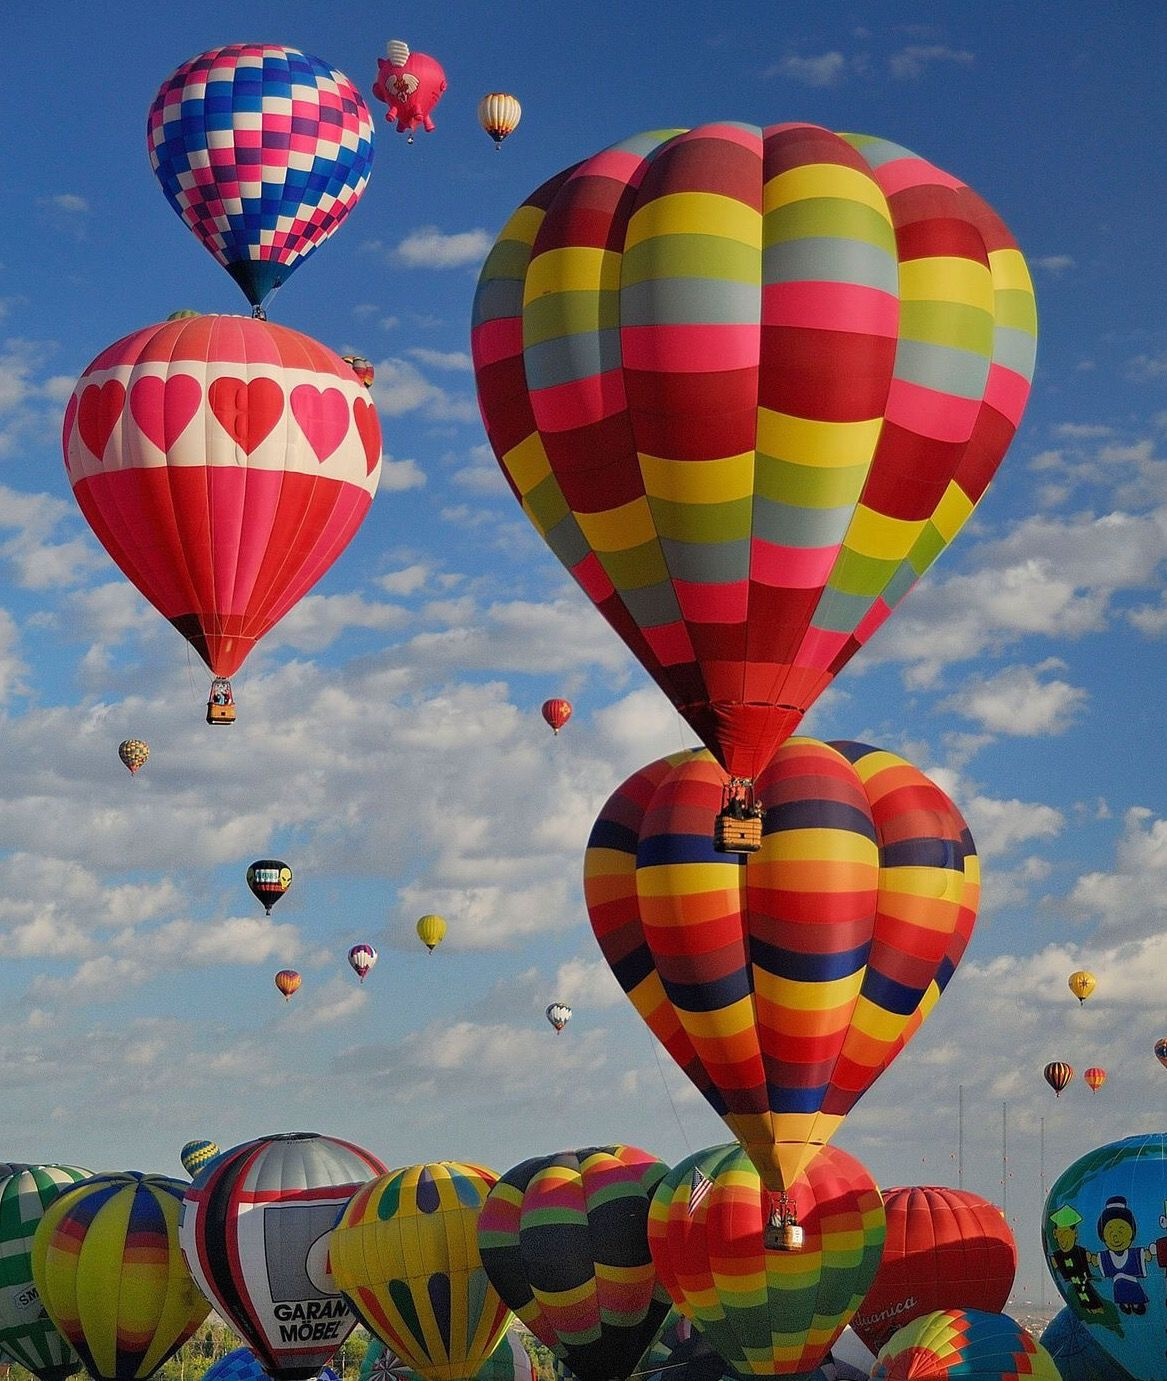 Pin By Tim Whitmore On Up Up And Away With Images Hot Air Balloon Festival